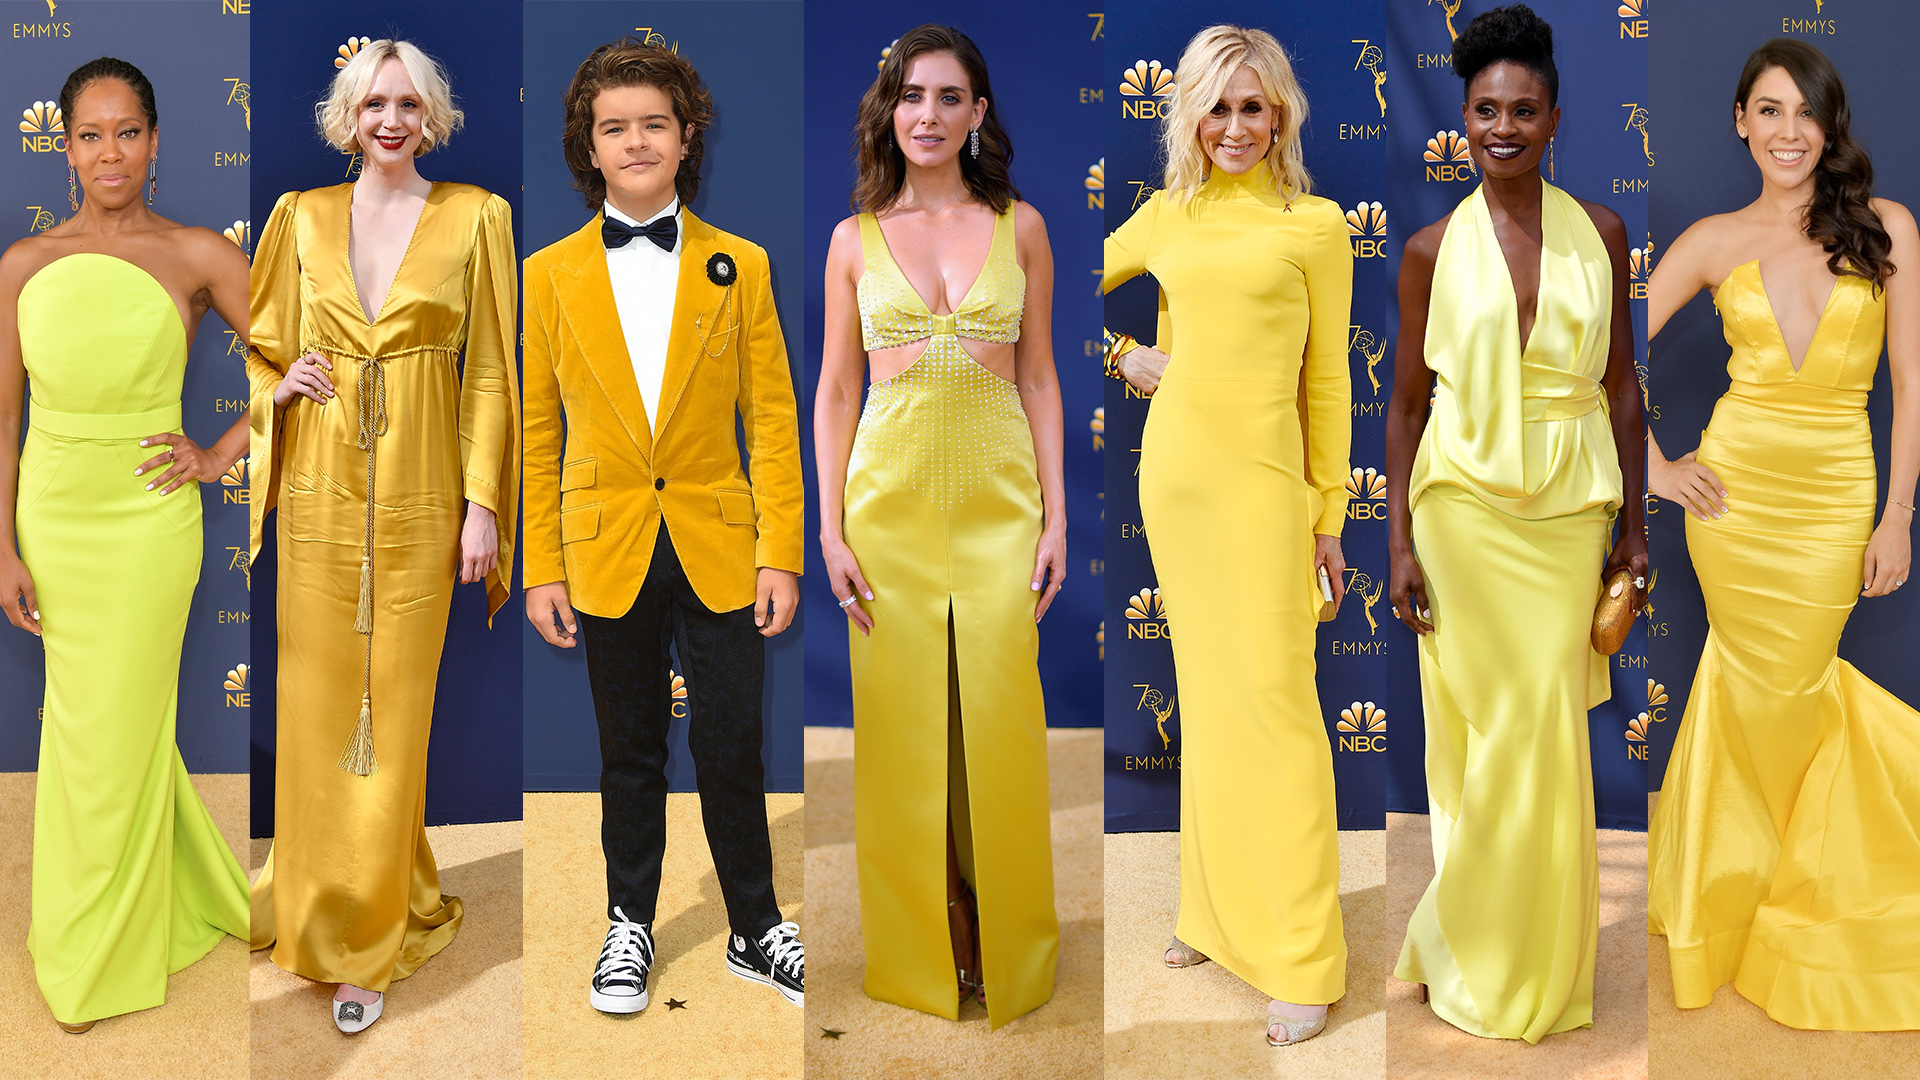 3513b347648ed Emmy Awards 2018 fashion trends: Yellow, menswear, pastels and more